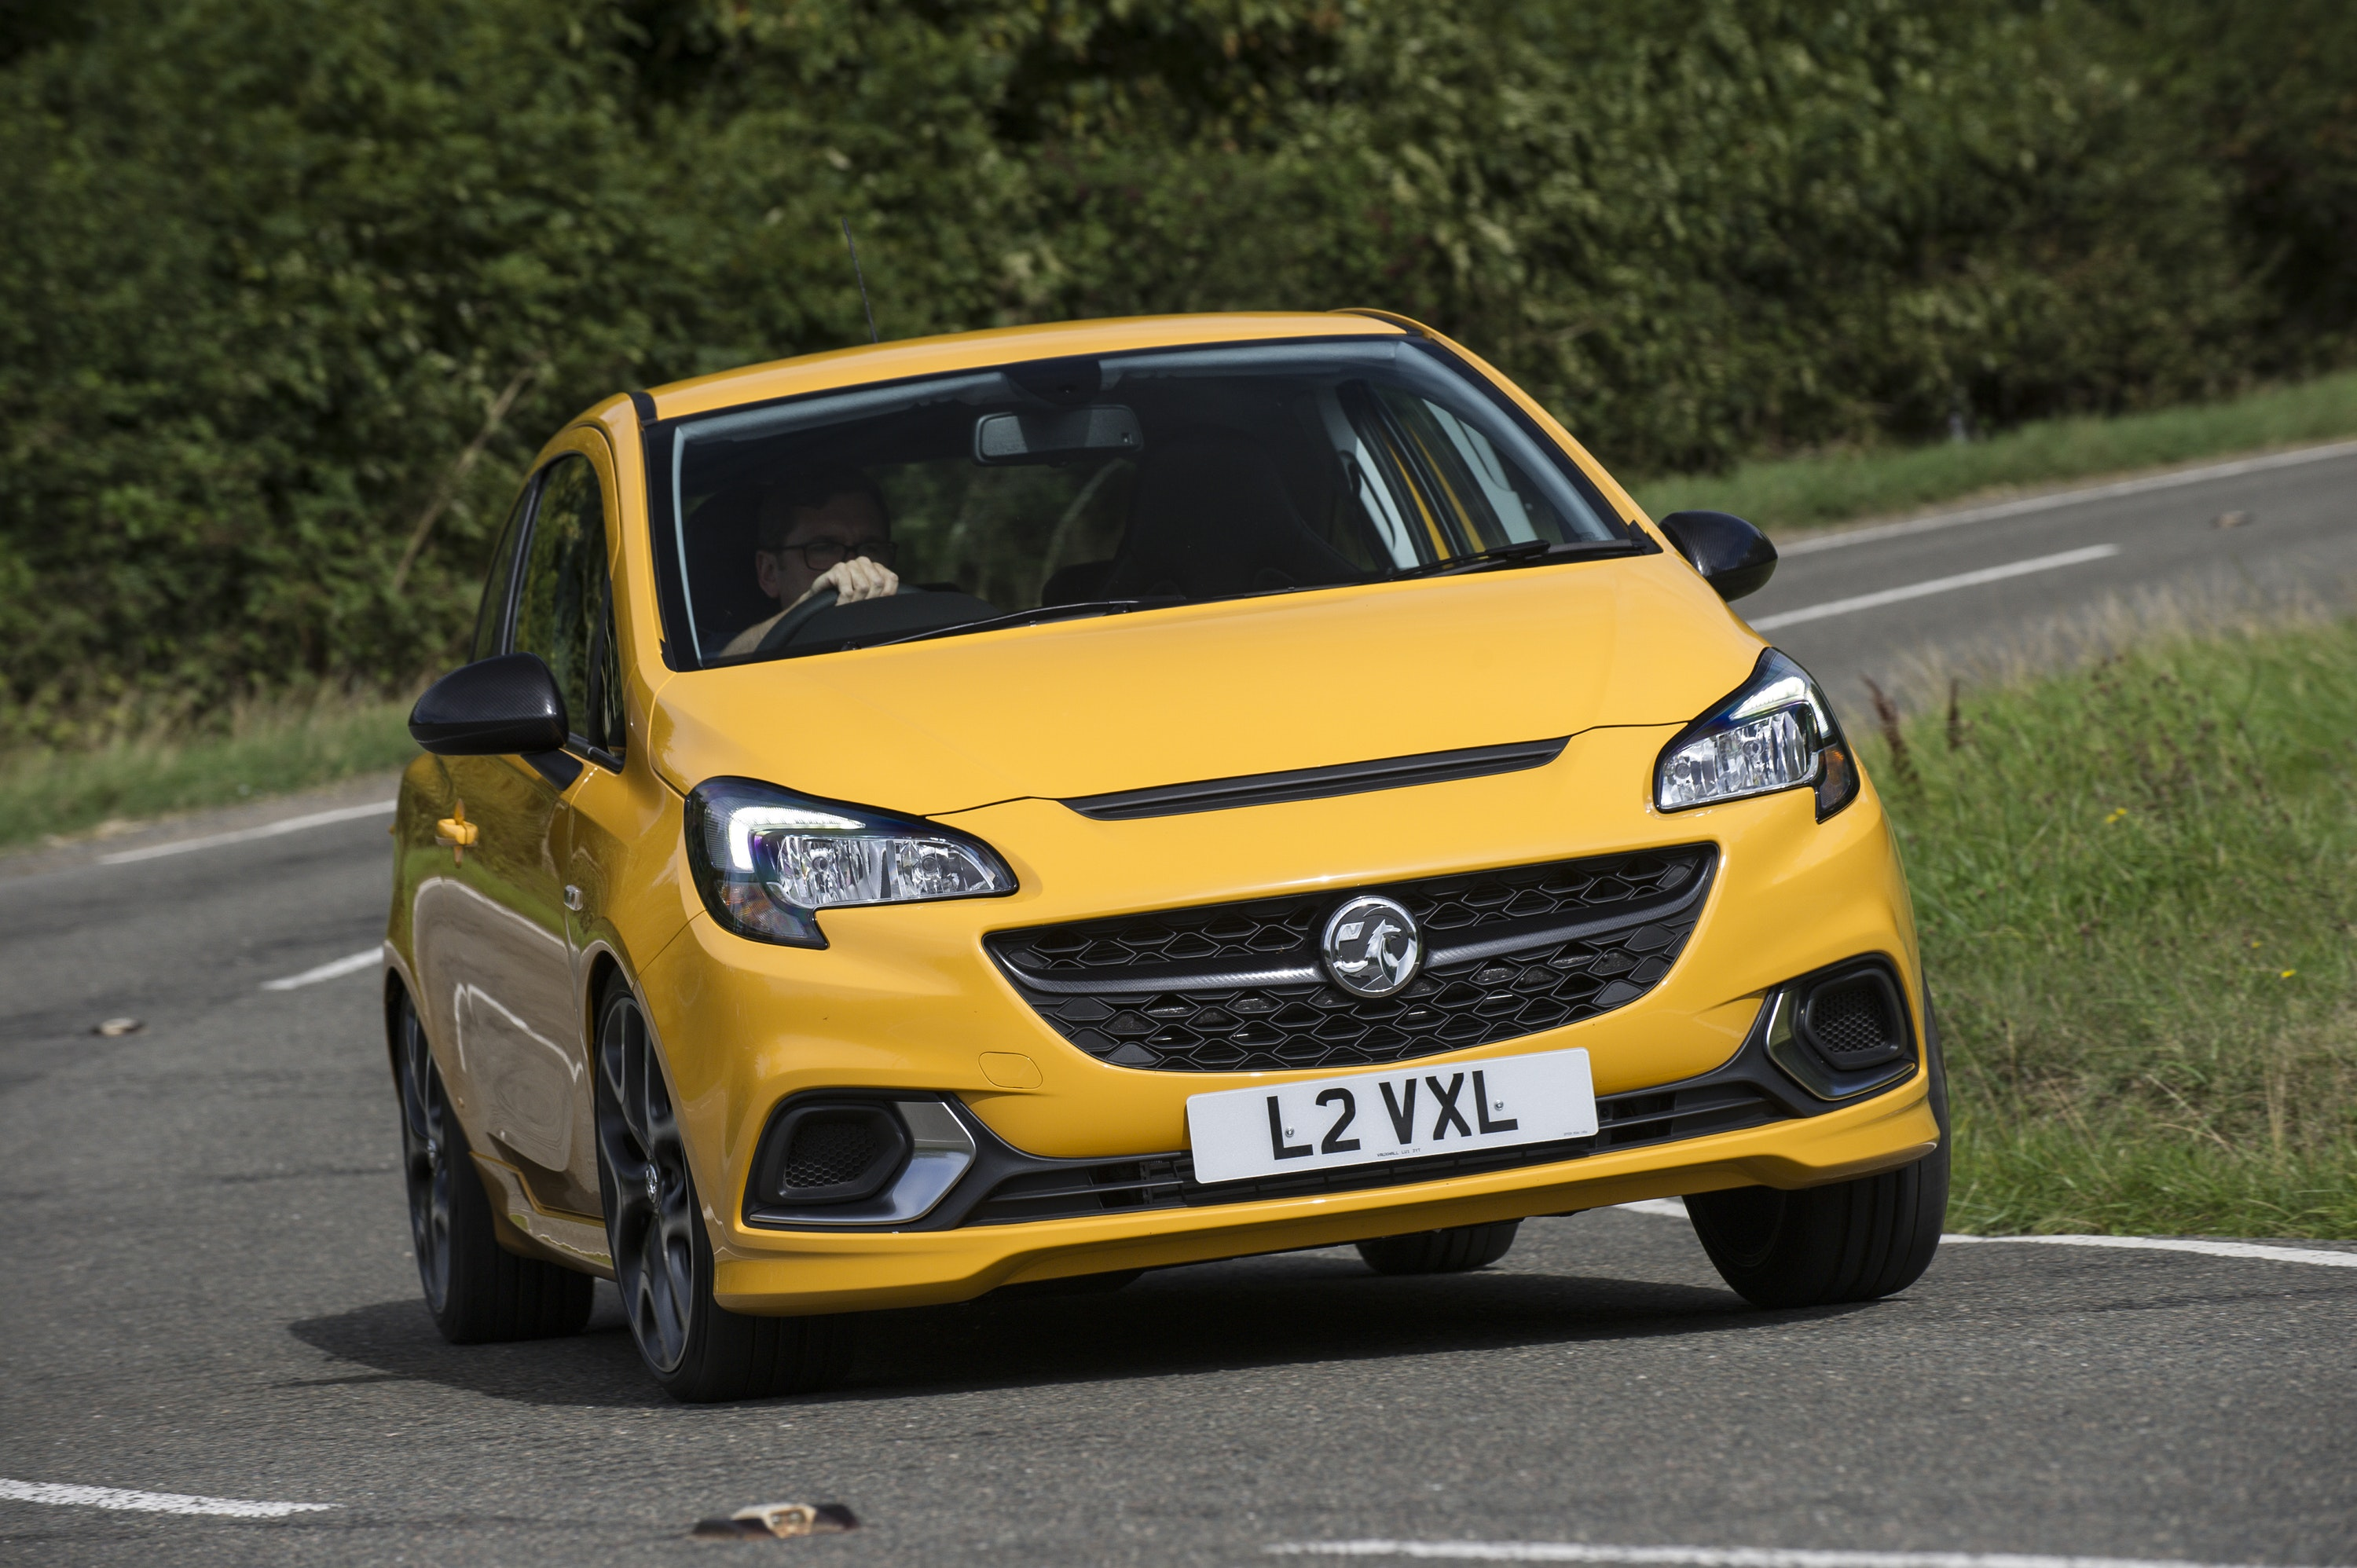 front view of Vauxhall Corsa driving on a road